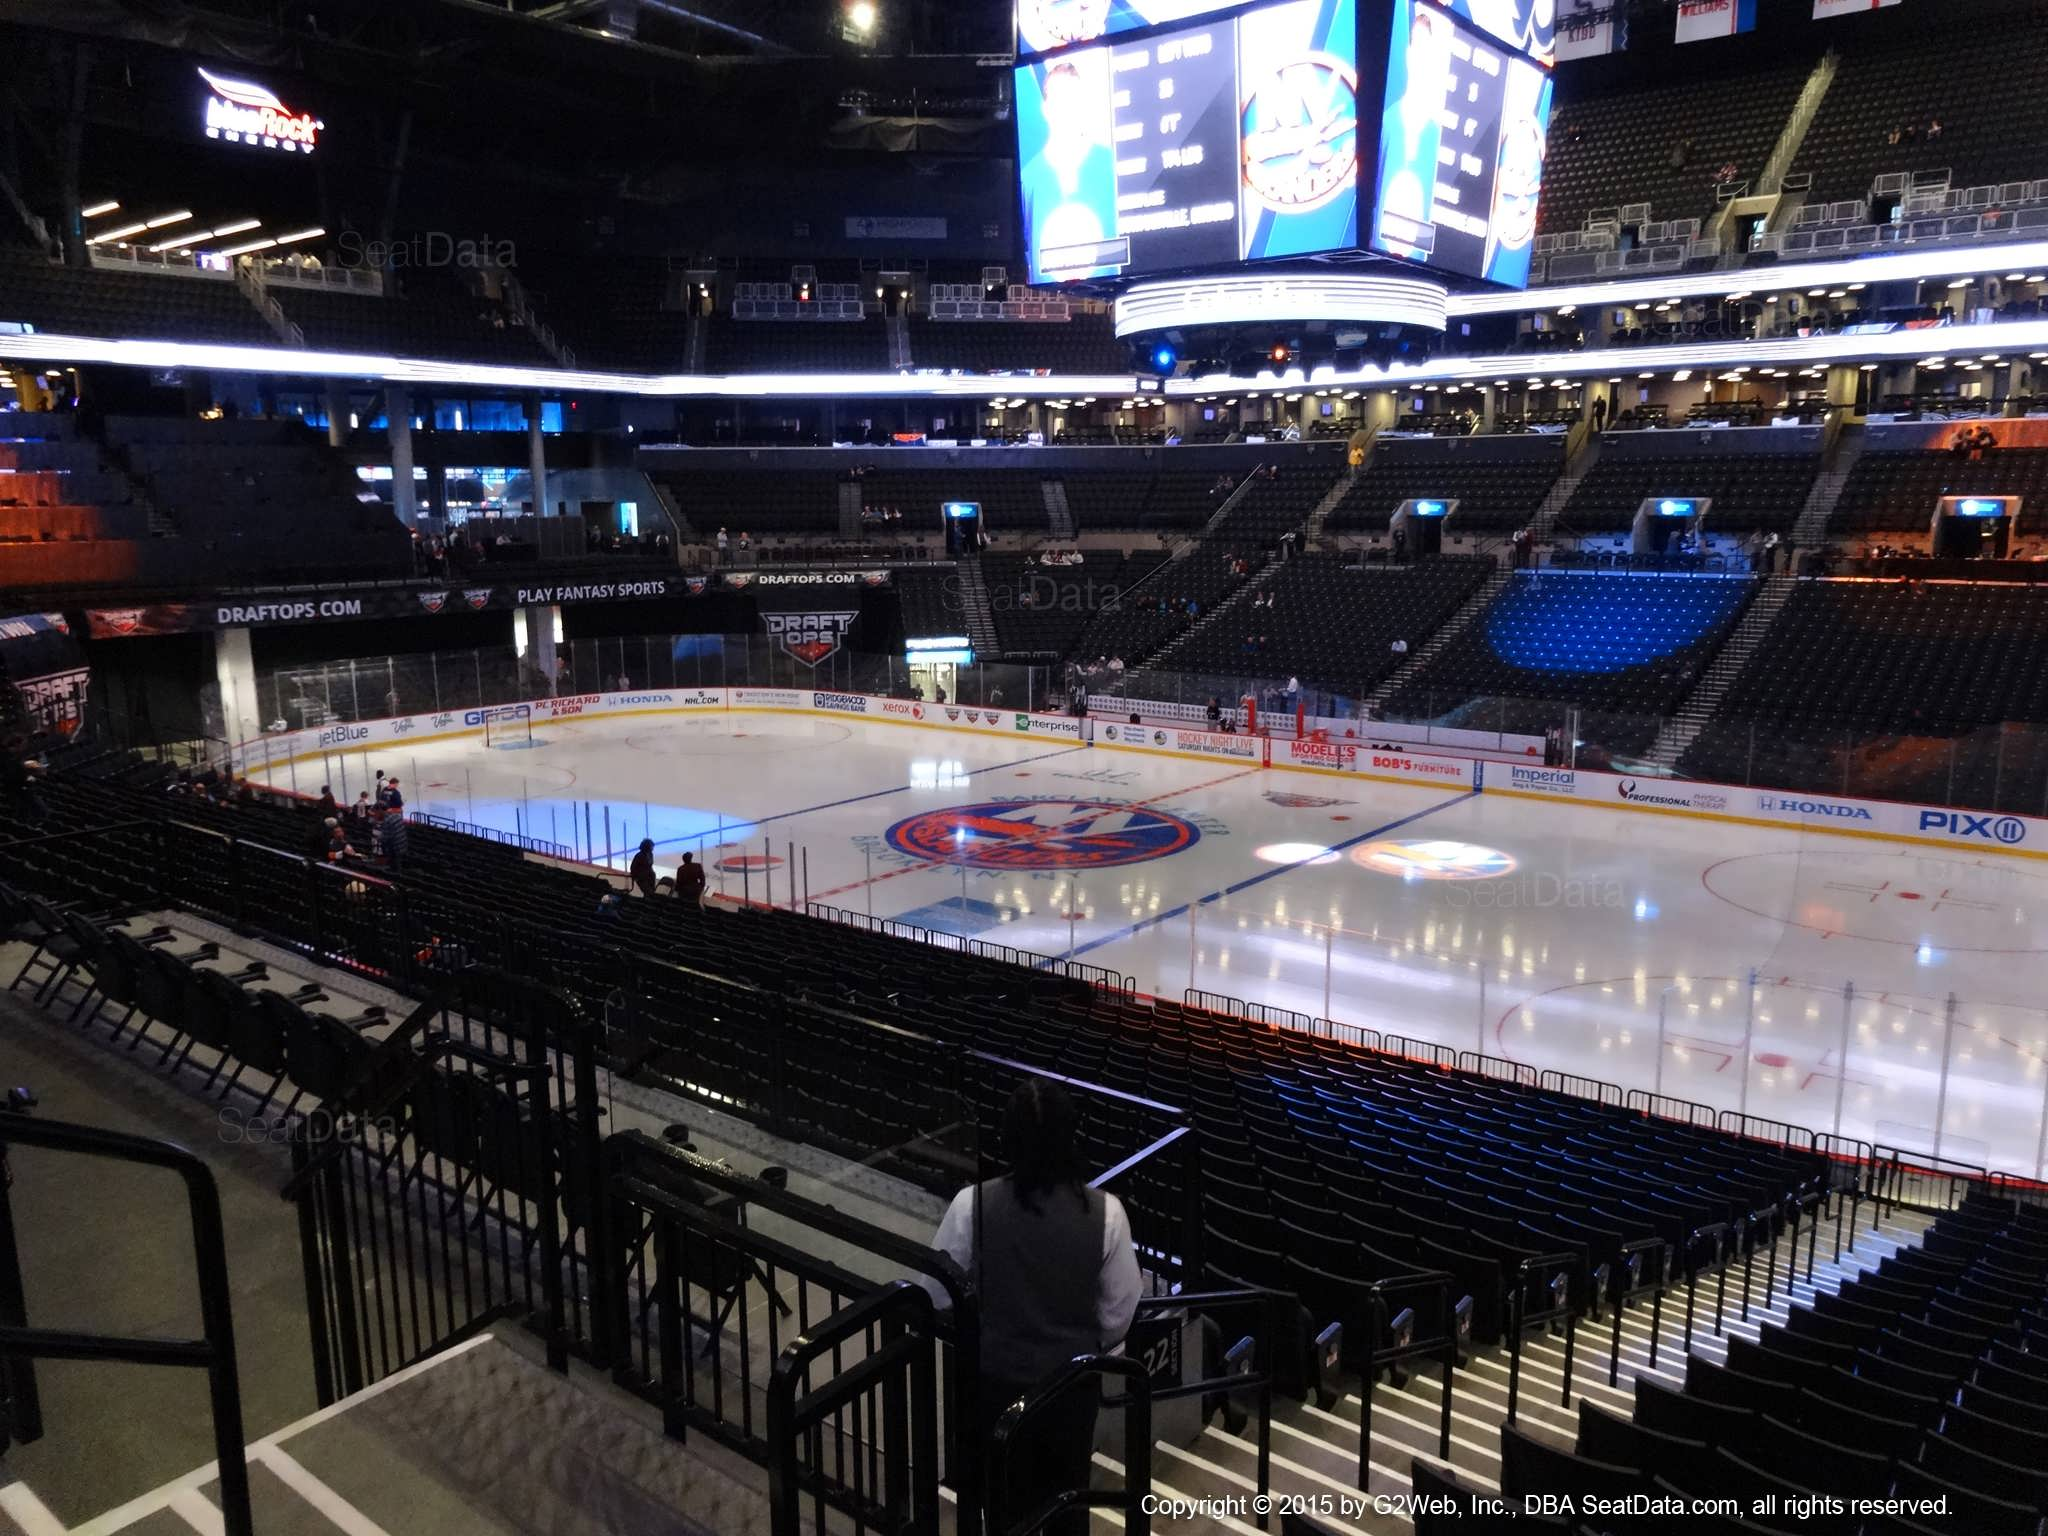 Seat View from Section 122 at the Barclays Center, home of the New York Islanders